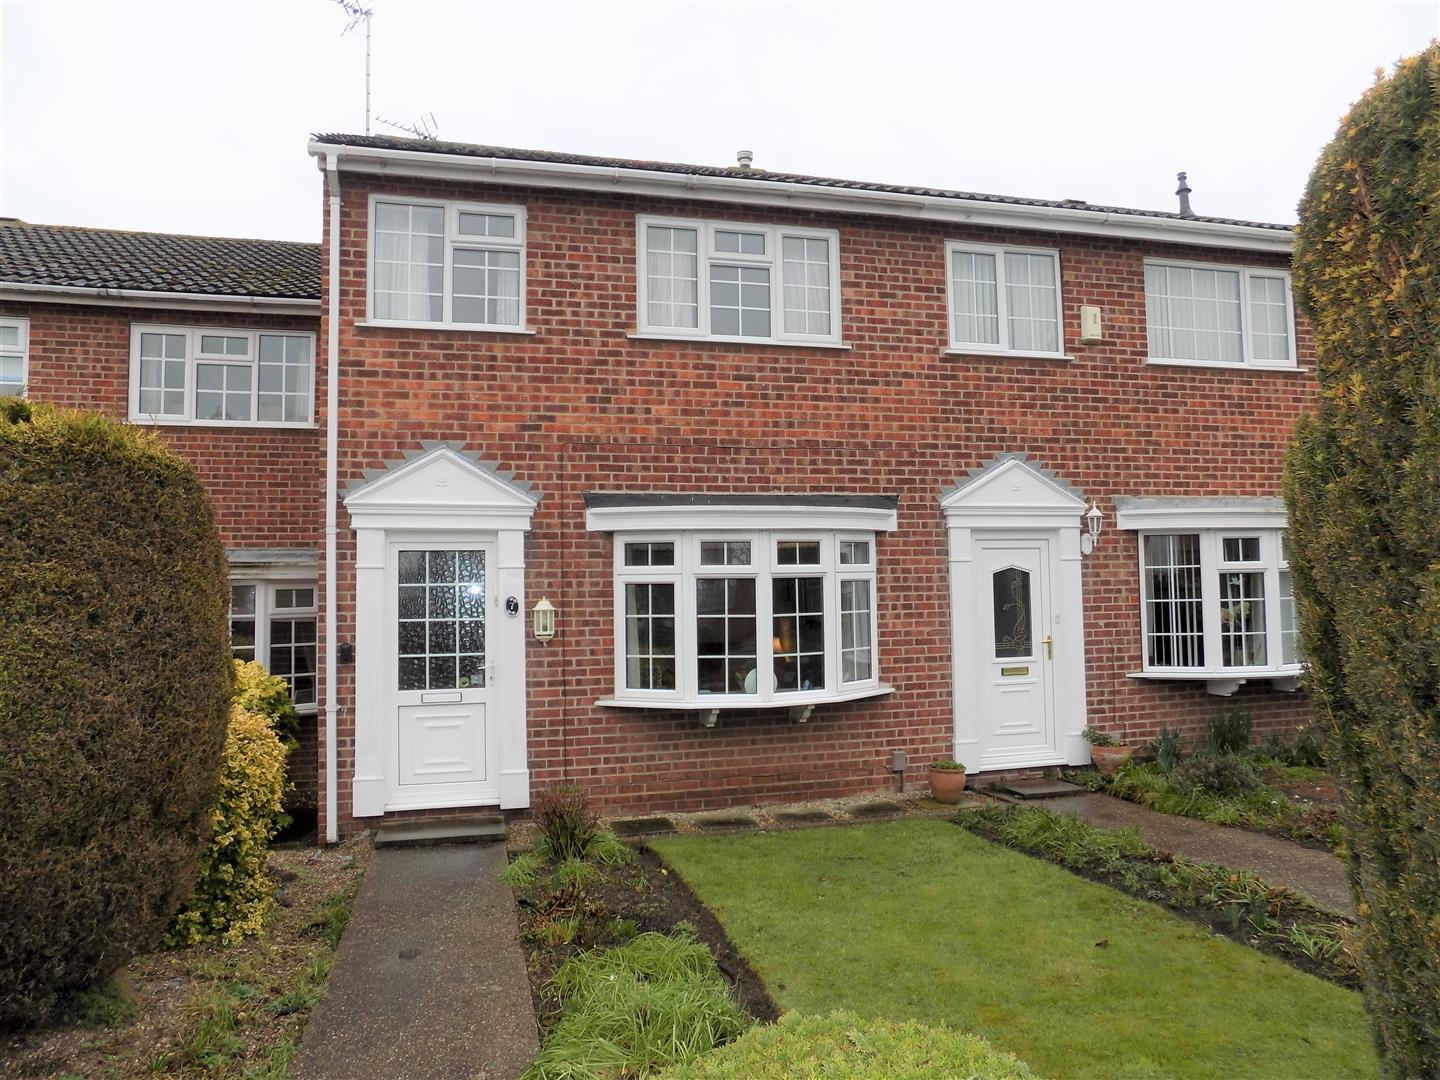 3 Bedrooms Terraced House for sale in Fosters Lane, Bingham, Nottingham